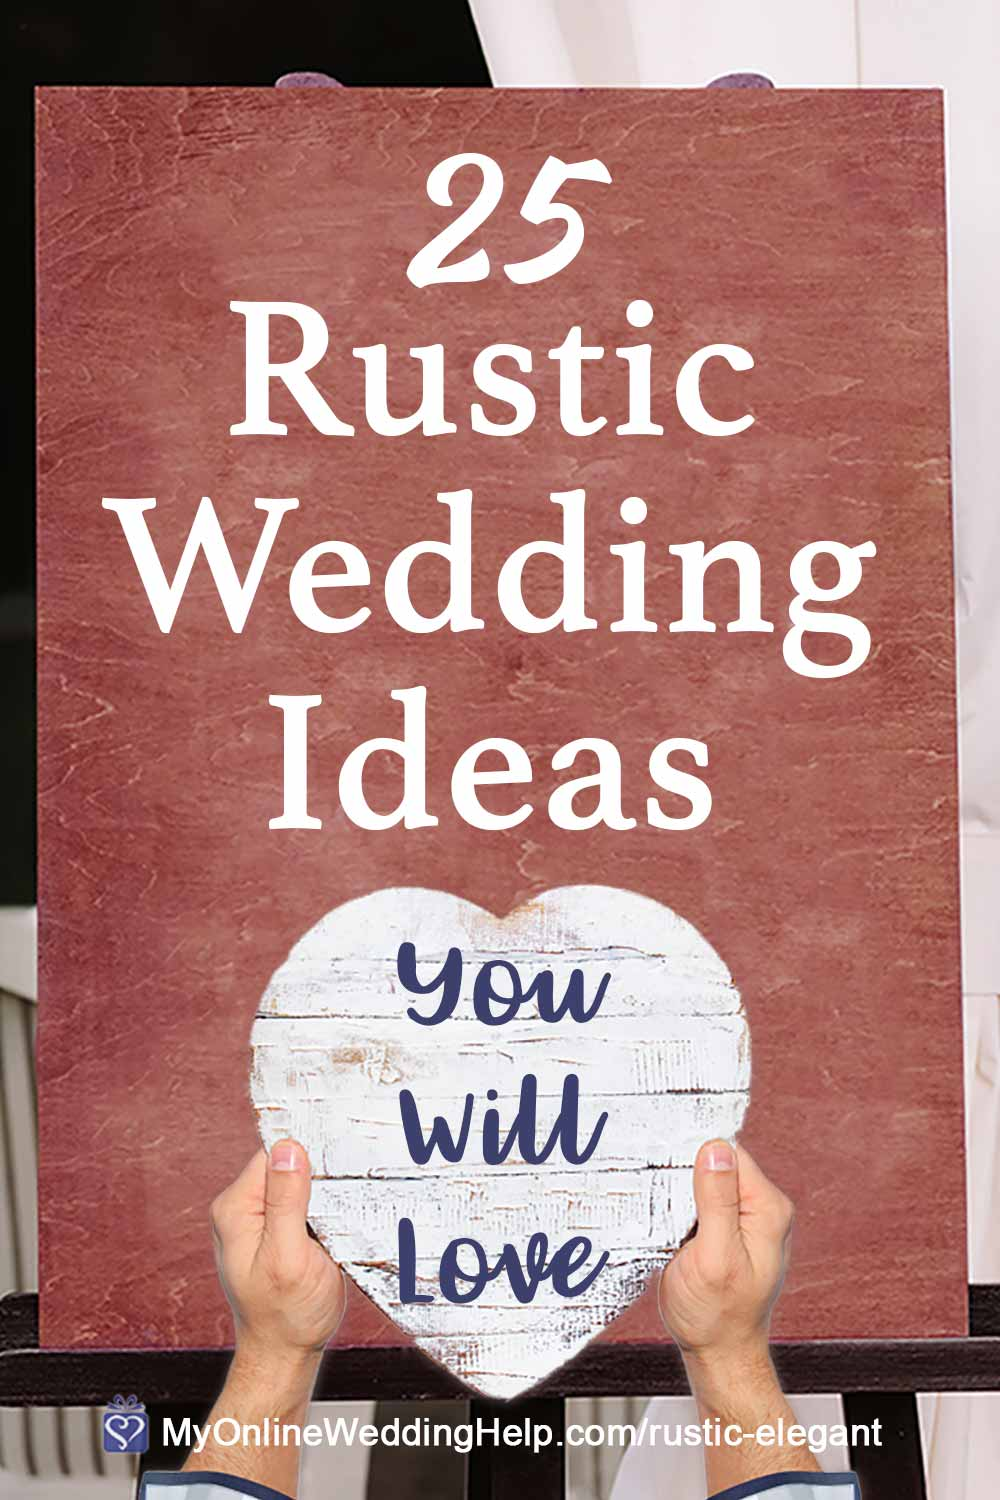 25 Rustic Elegant Wedding Ideas You Will Love - My Online Wedding Help. Wedding  Planning Tips & Tools